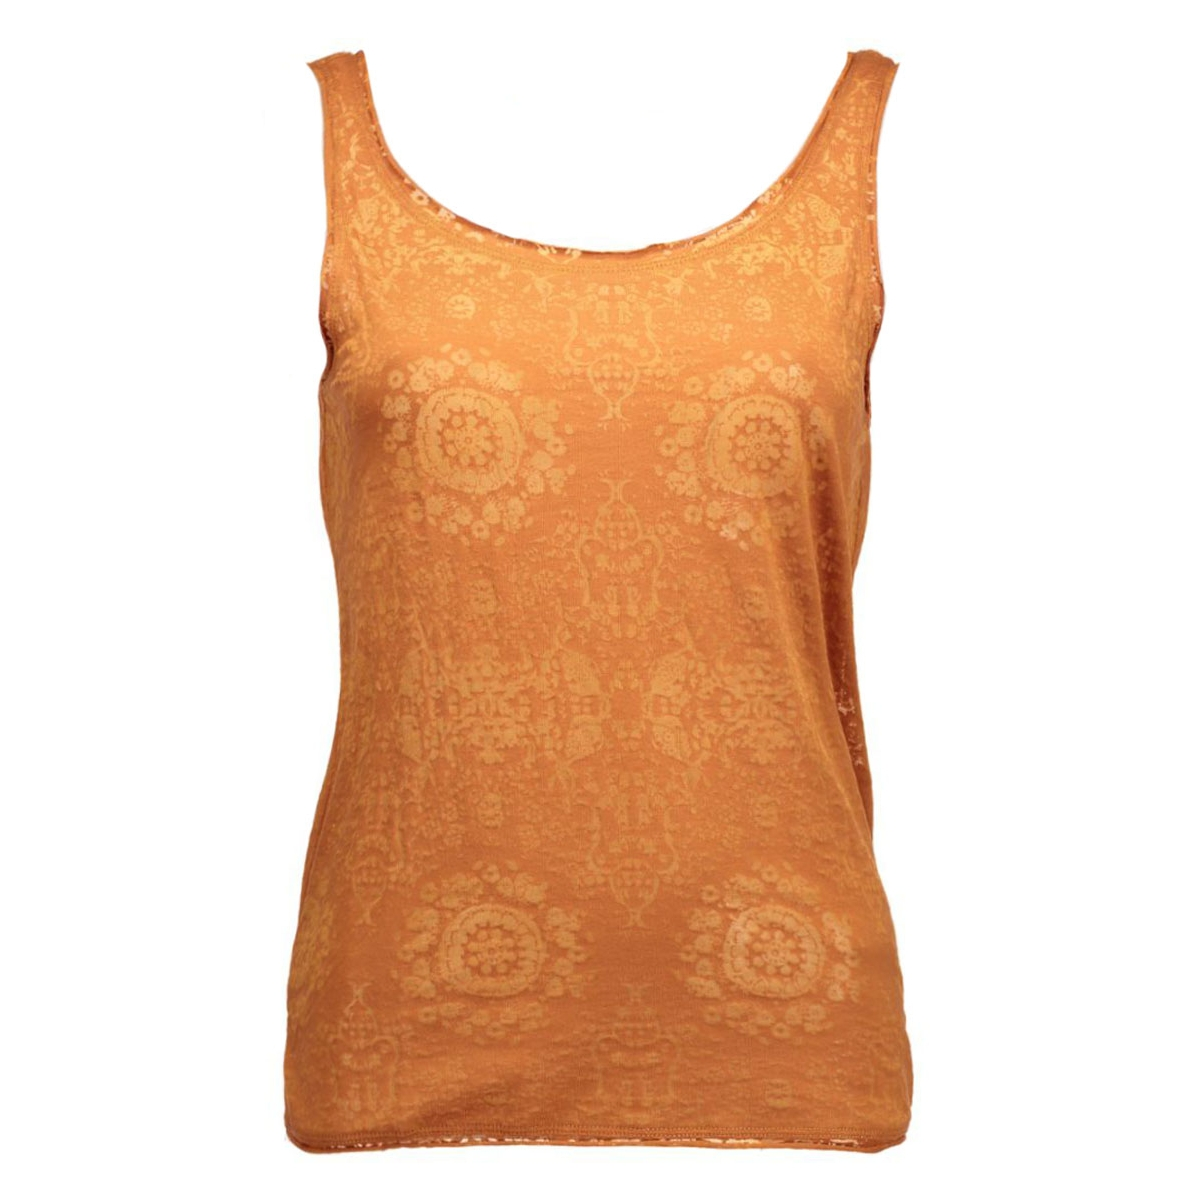 vmerin tank top a wp6 10156068 vero moda top adobe